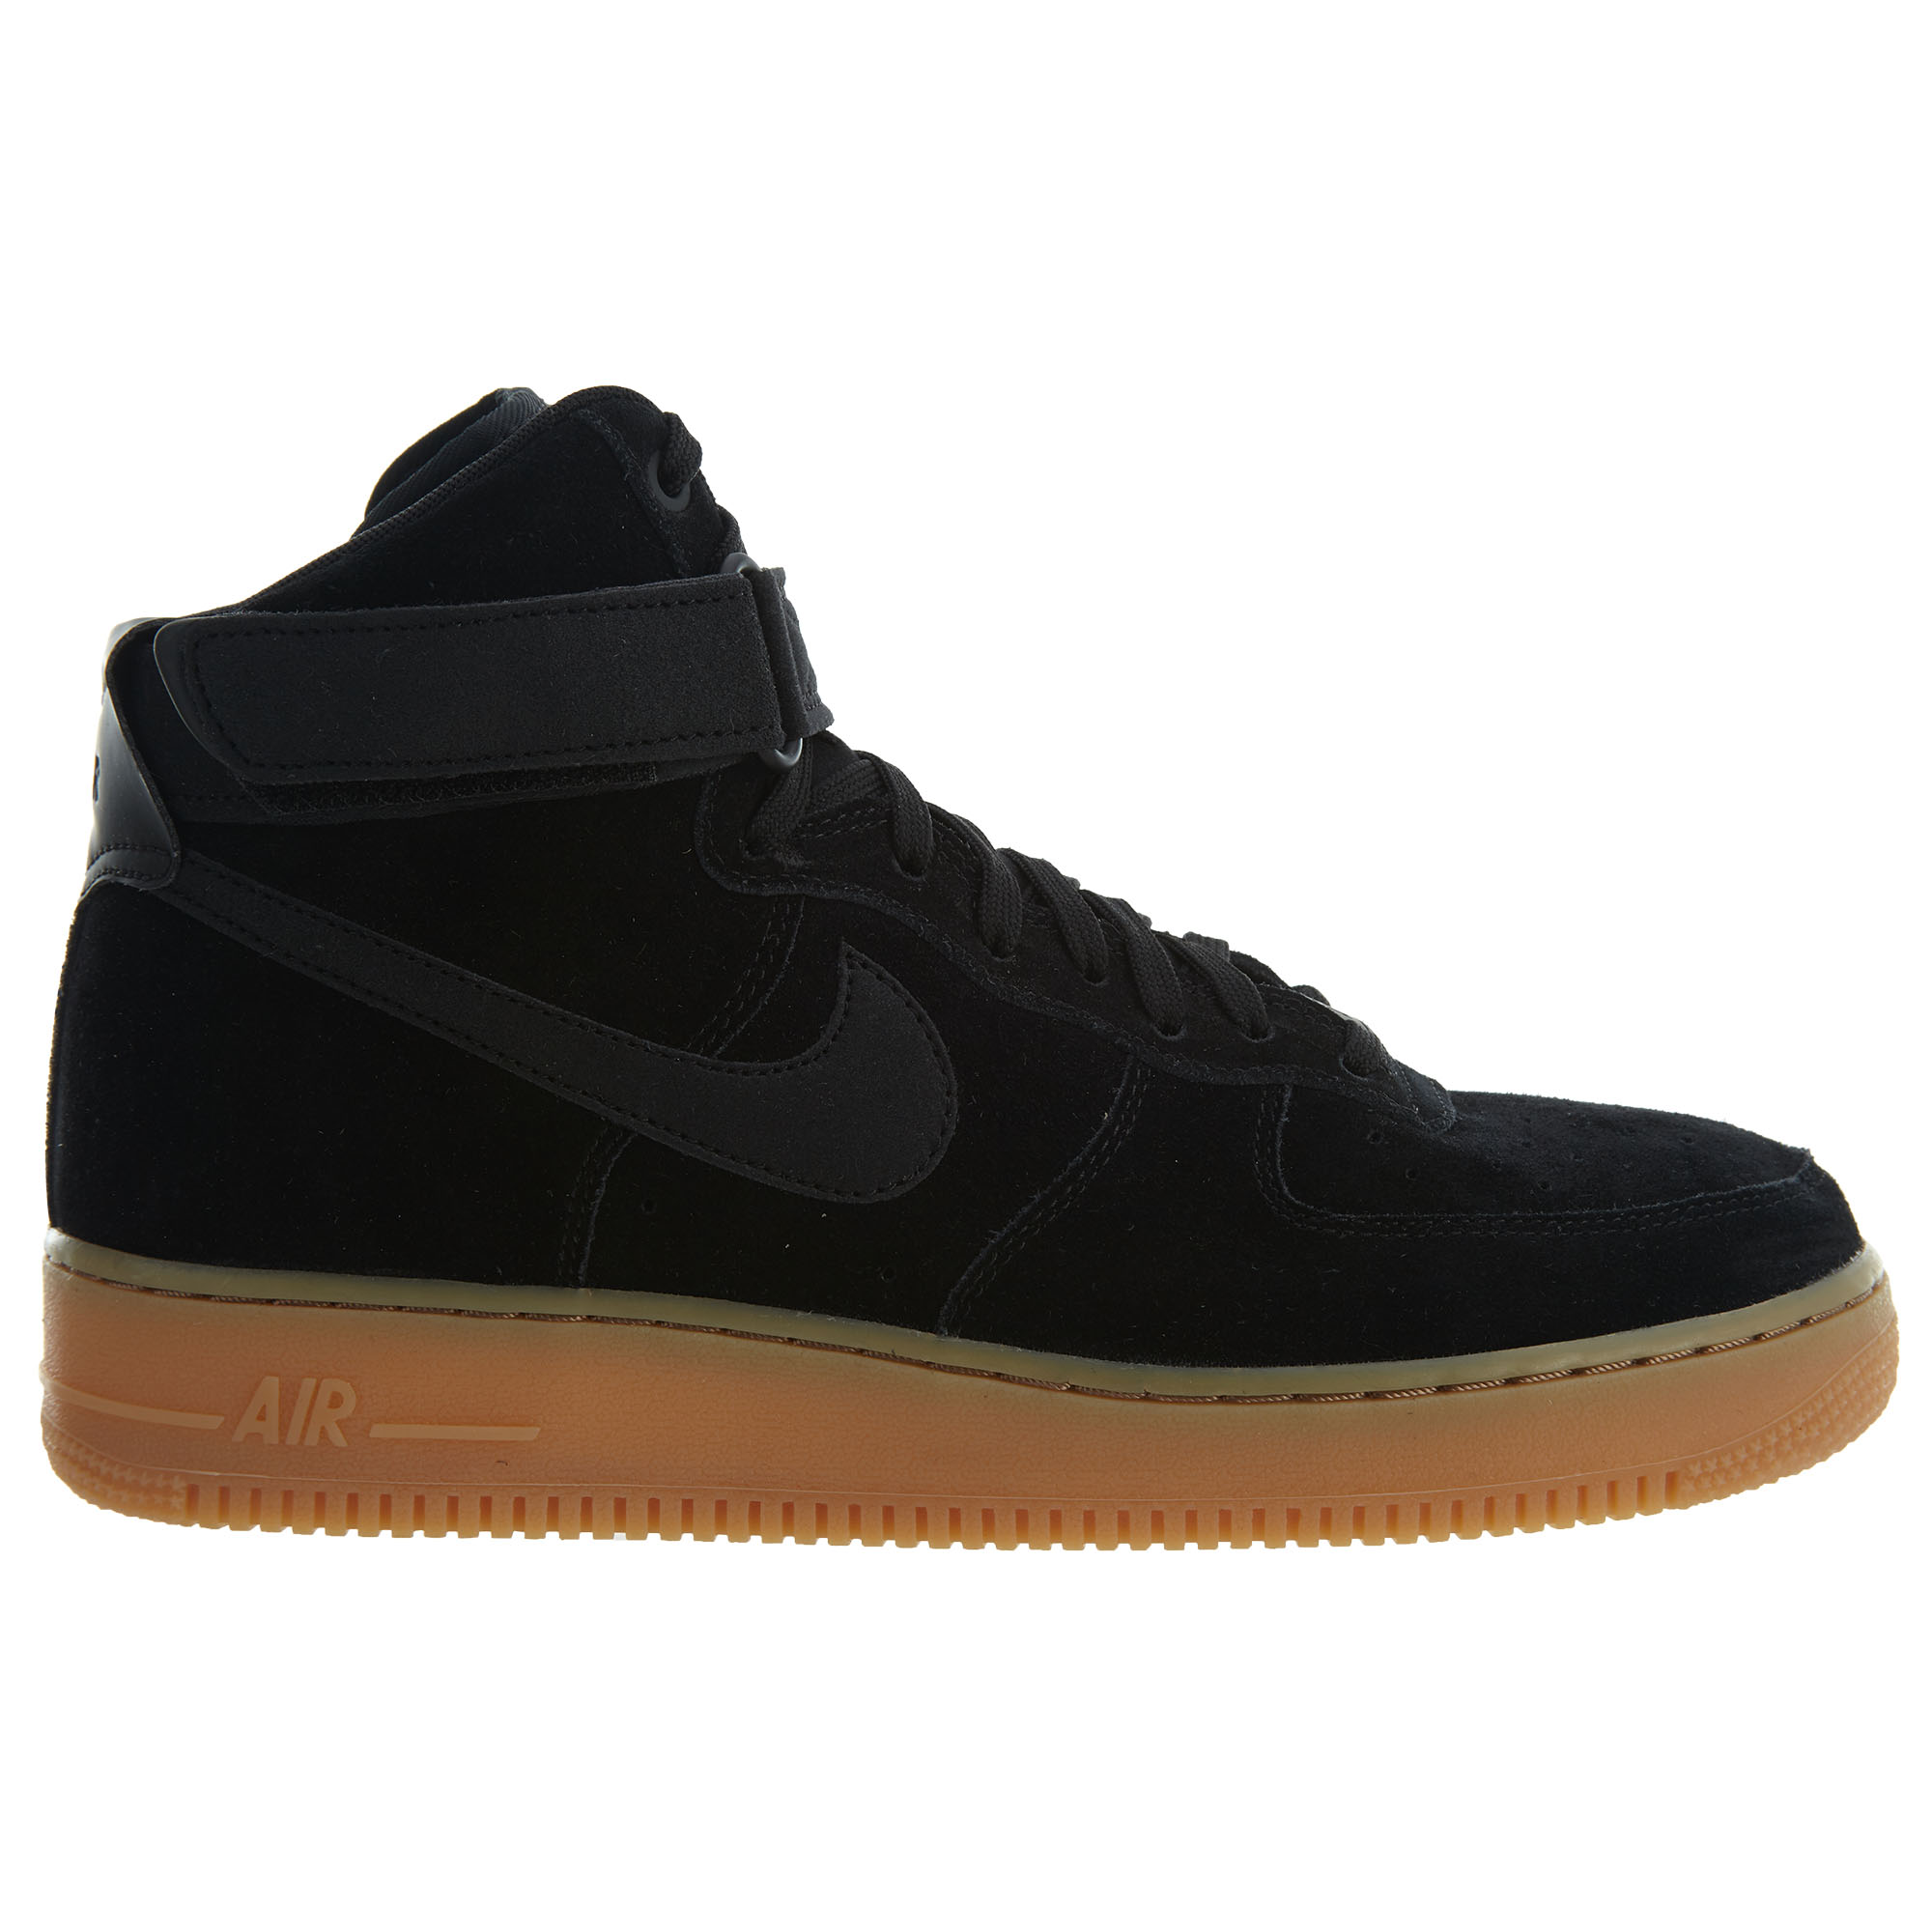 Nike Air Force 1 High 07 Lv8 Suede Black/Black-Gum Med Brown